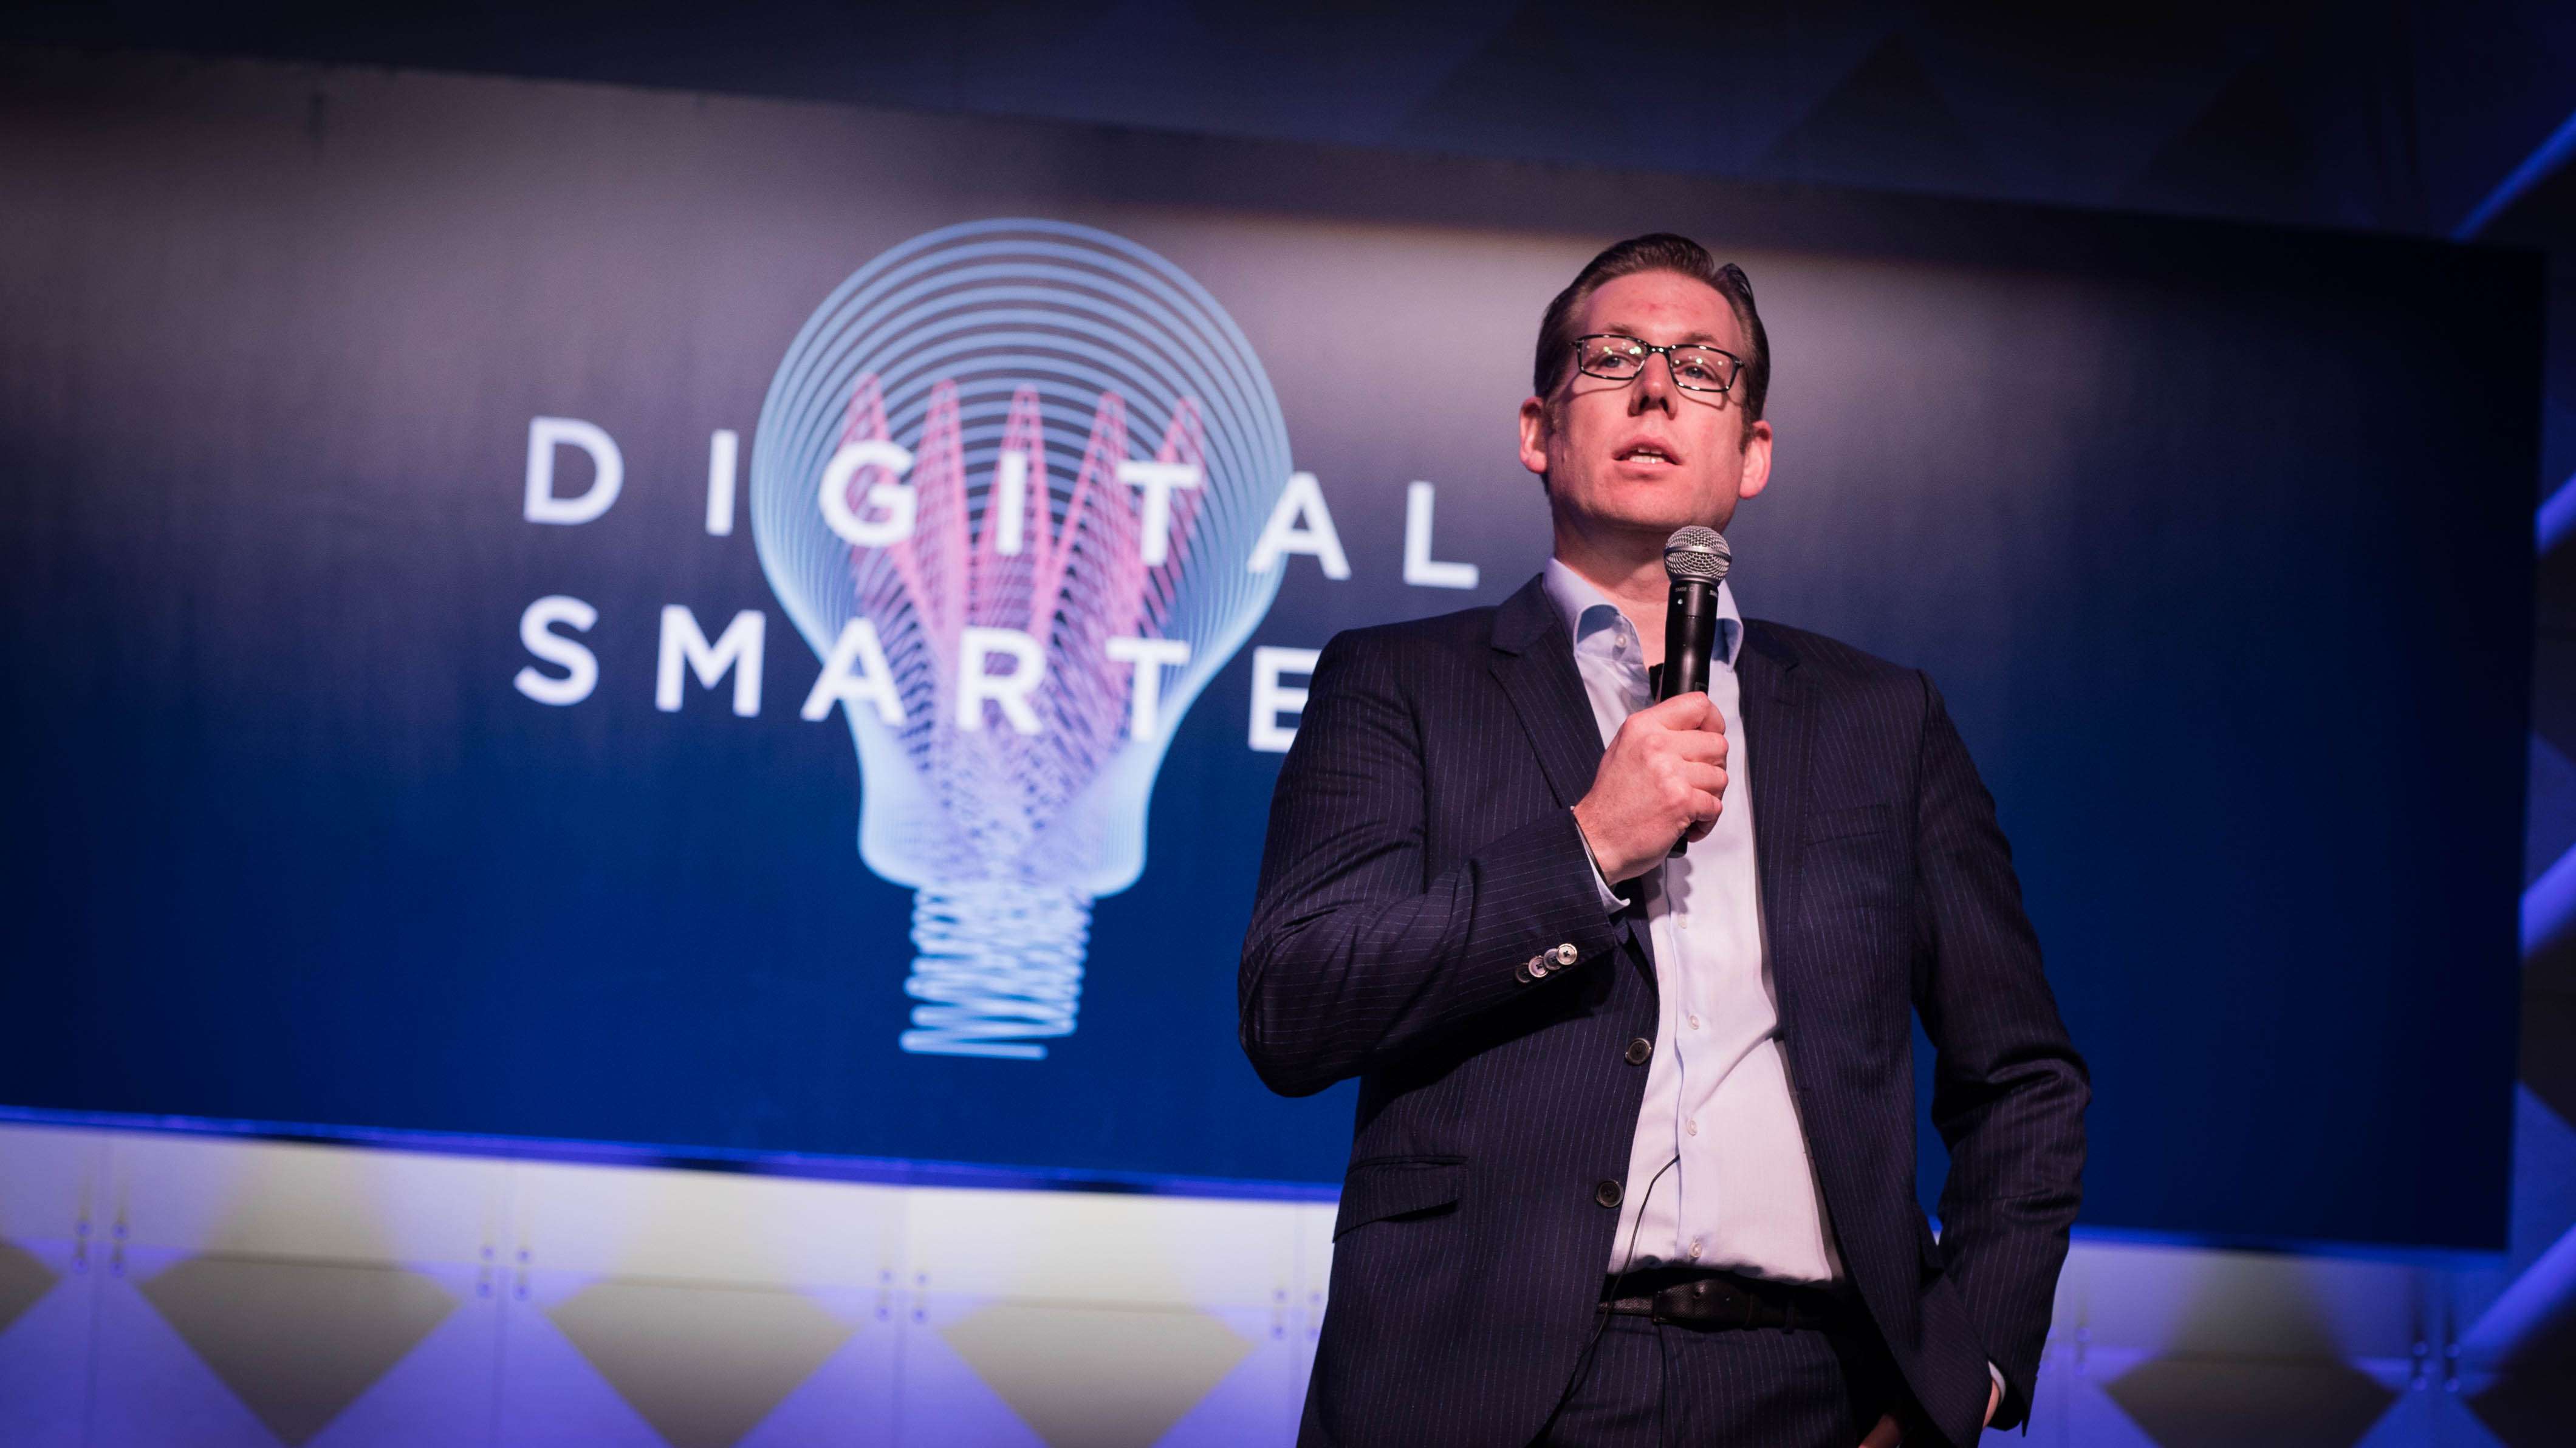 CMO Thomas Been explains how this year's TIBCO NOW theme—Digital Smarter—is about enhancing the customer experience, increasing and improving speed and agility, and a focus on continuous optimization.